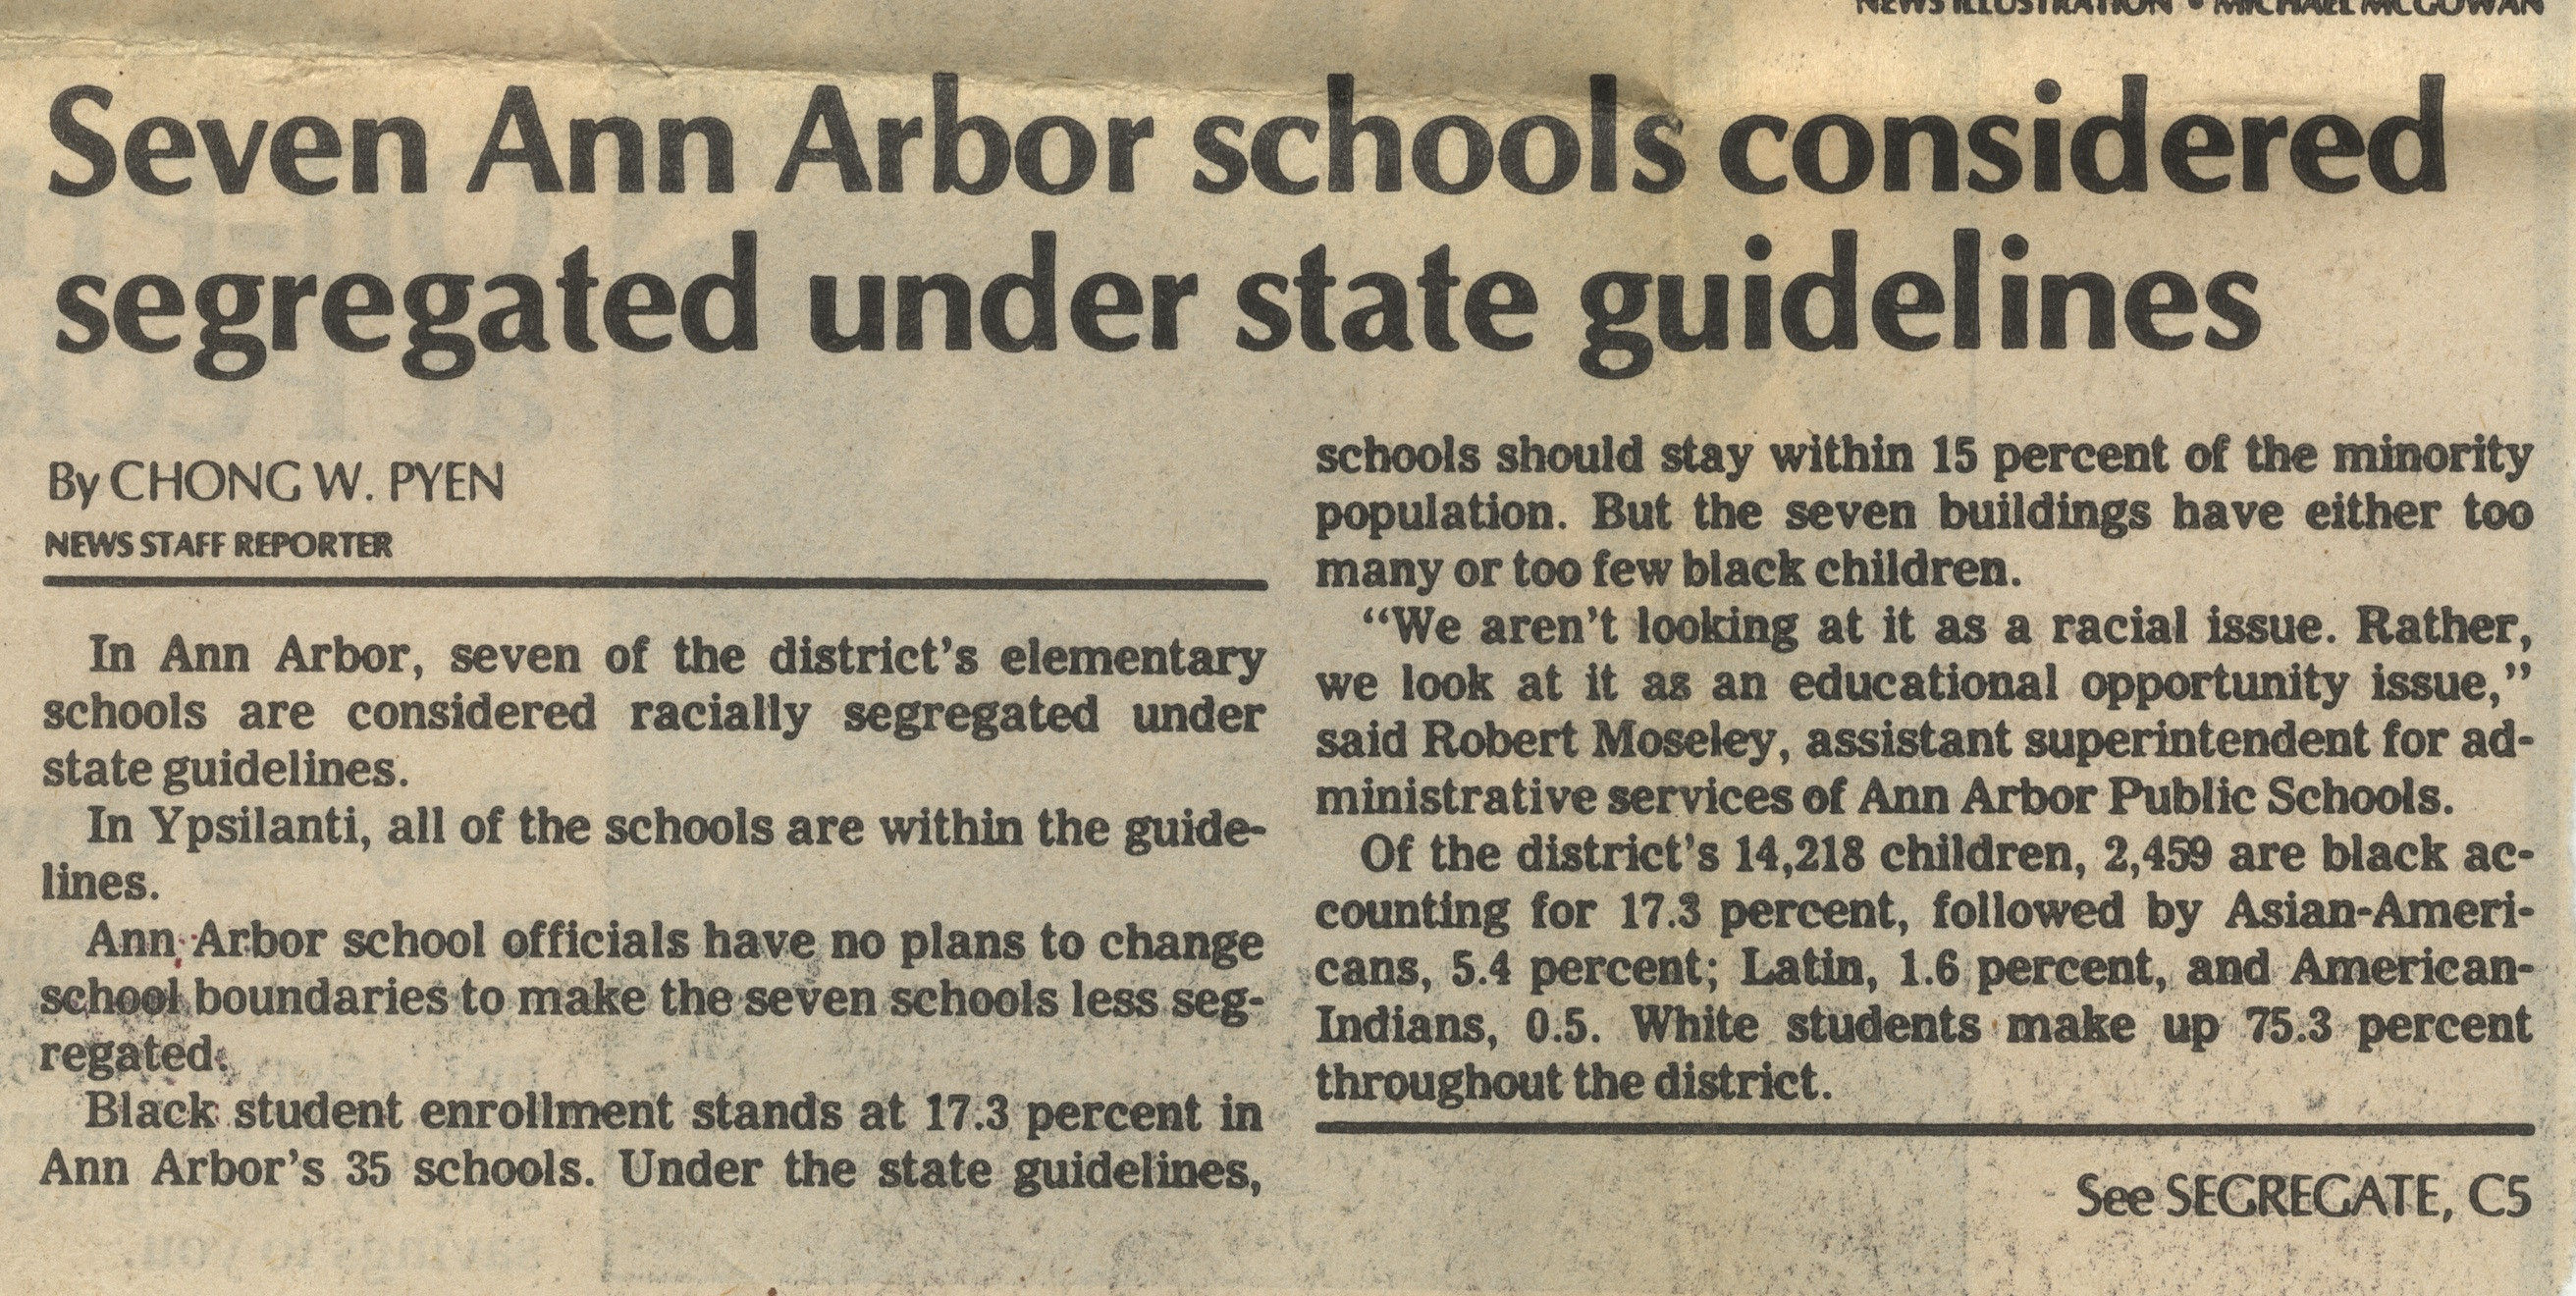 Seven Ann Arbor Schools Considered Segregated Under State Guidelines image